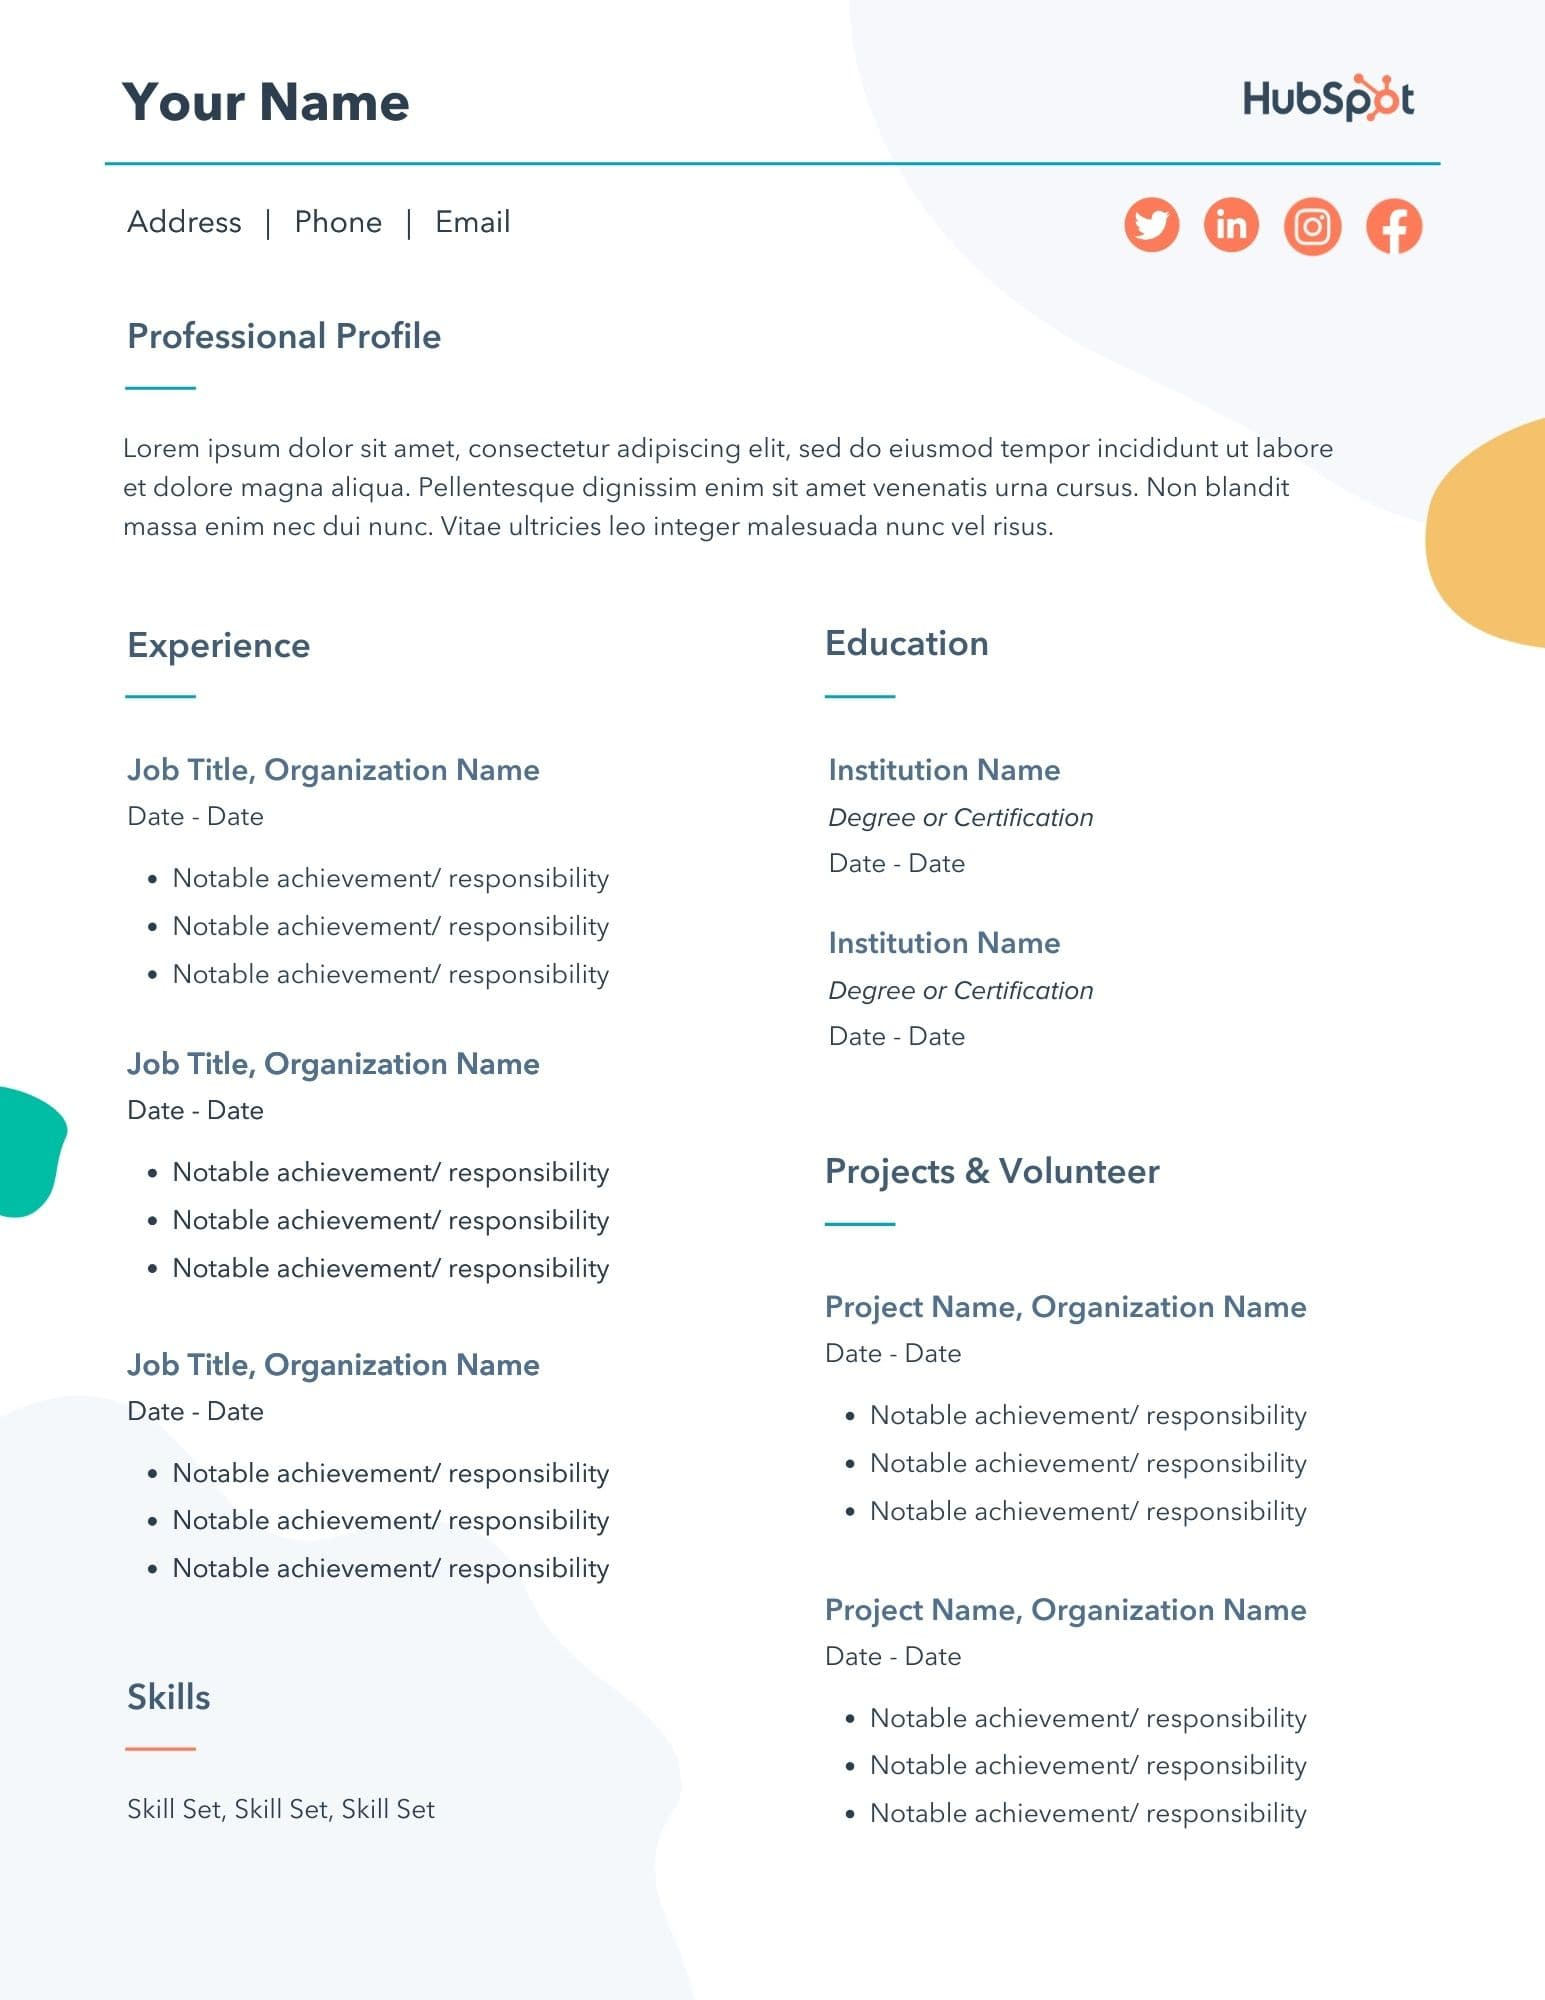 Dating Resume Template : dating, resume, template, Dating, Resume, Powerful, Summary, Examples, Samples, Childcare, Positions, Sample, Nursing, Without, Experience, Preschool, Teacher, Fresher, Human, Resources, Executive